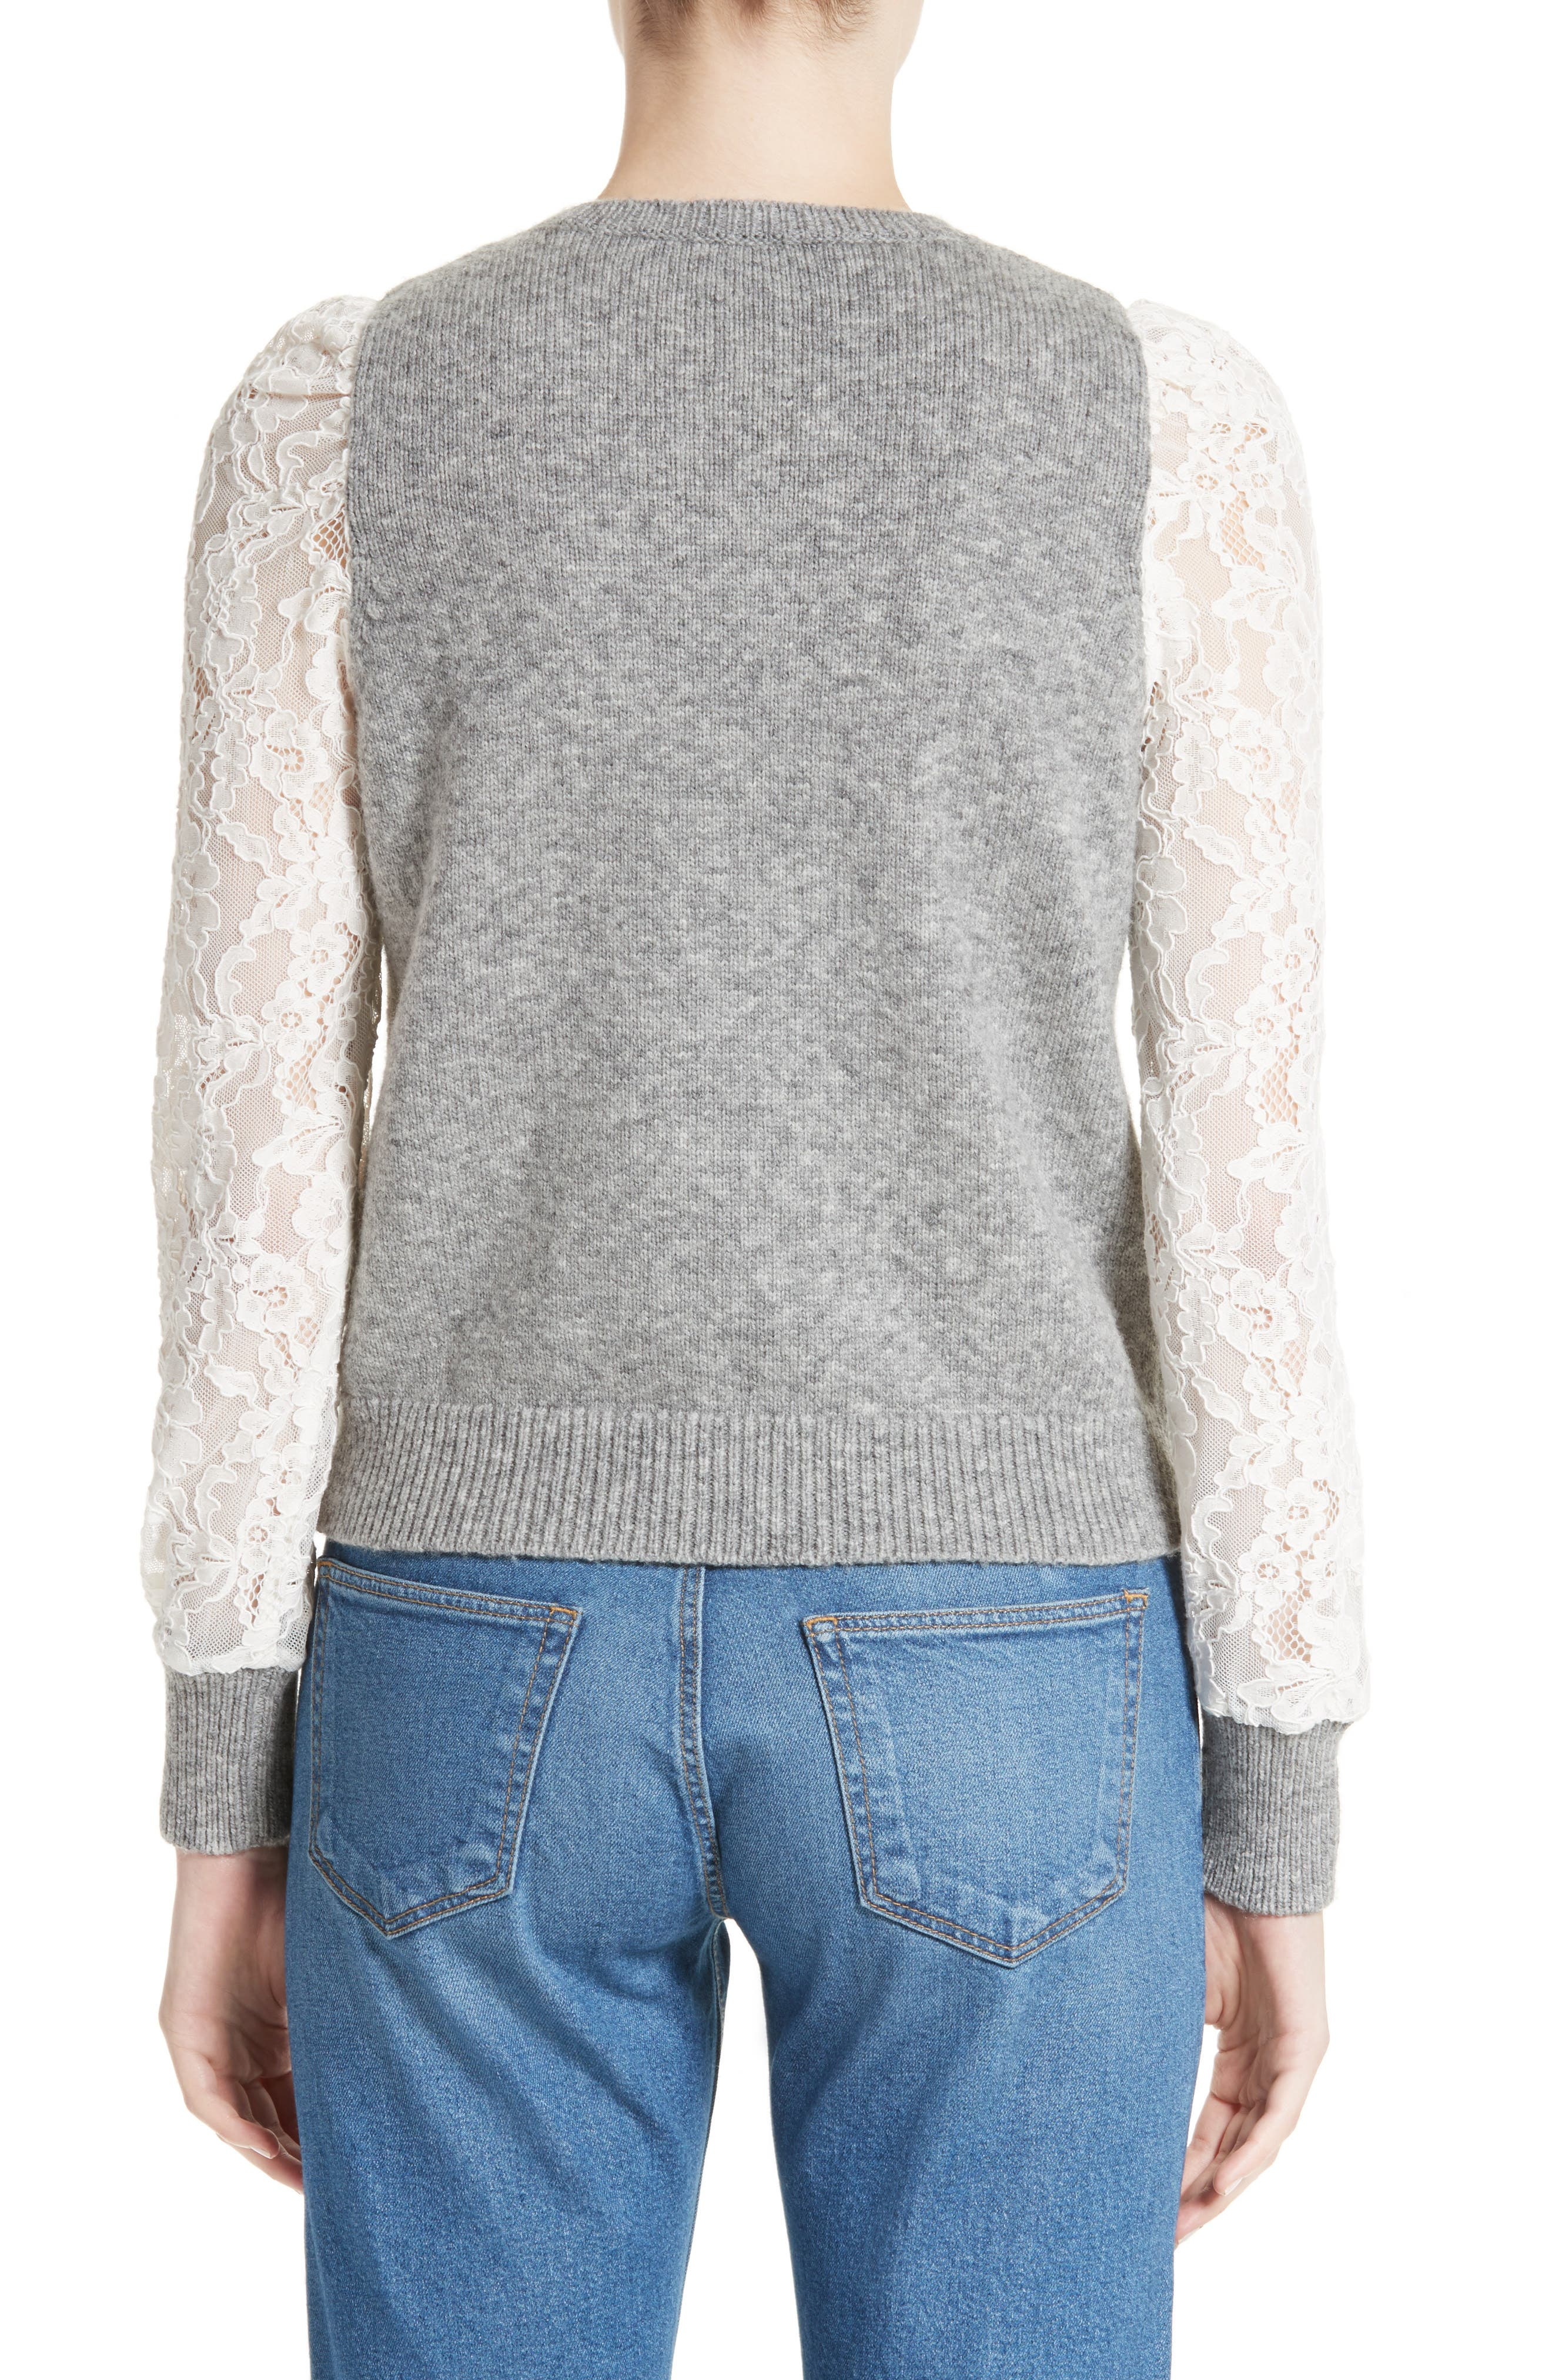 REBECCA TAYLOR,                             Lace Sleeve Sweater,                             Alternate thumbnail 2, color,                             063